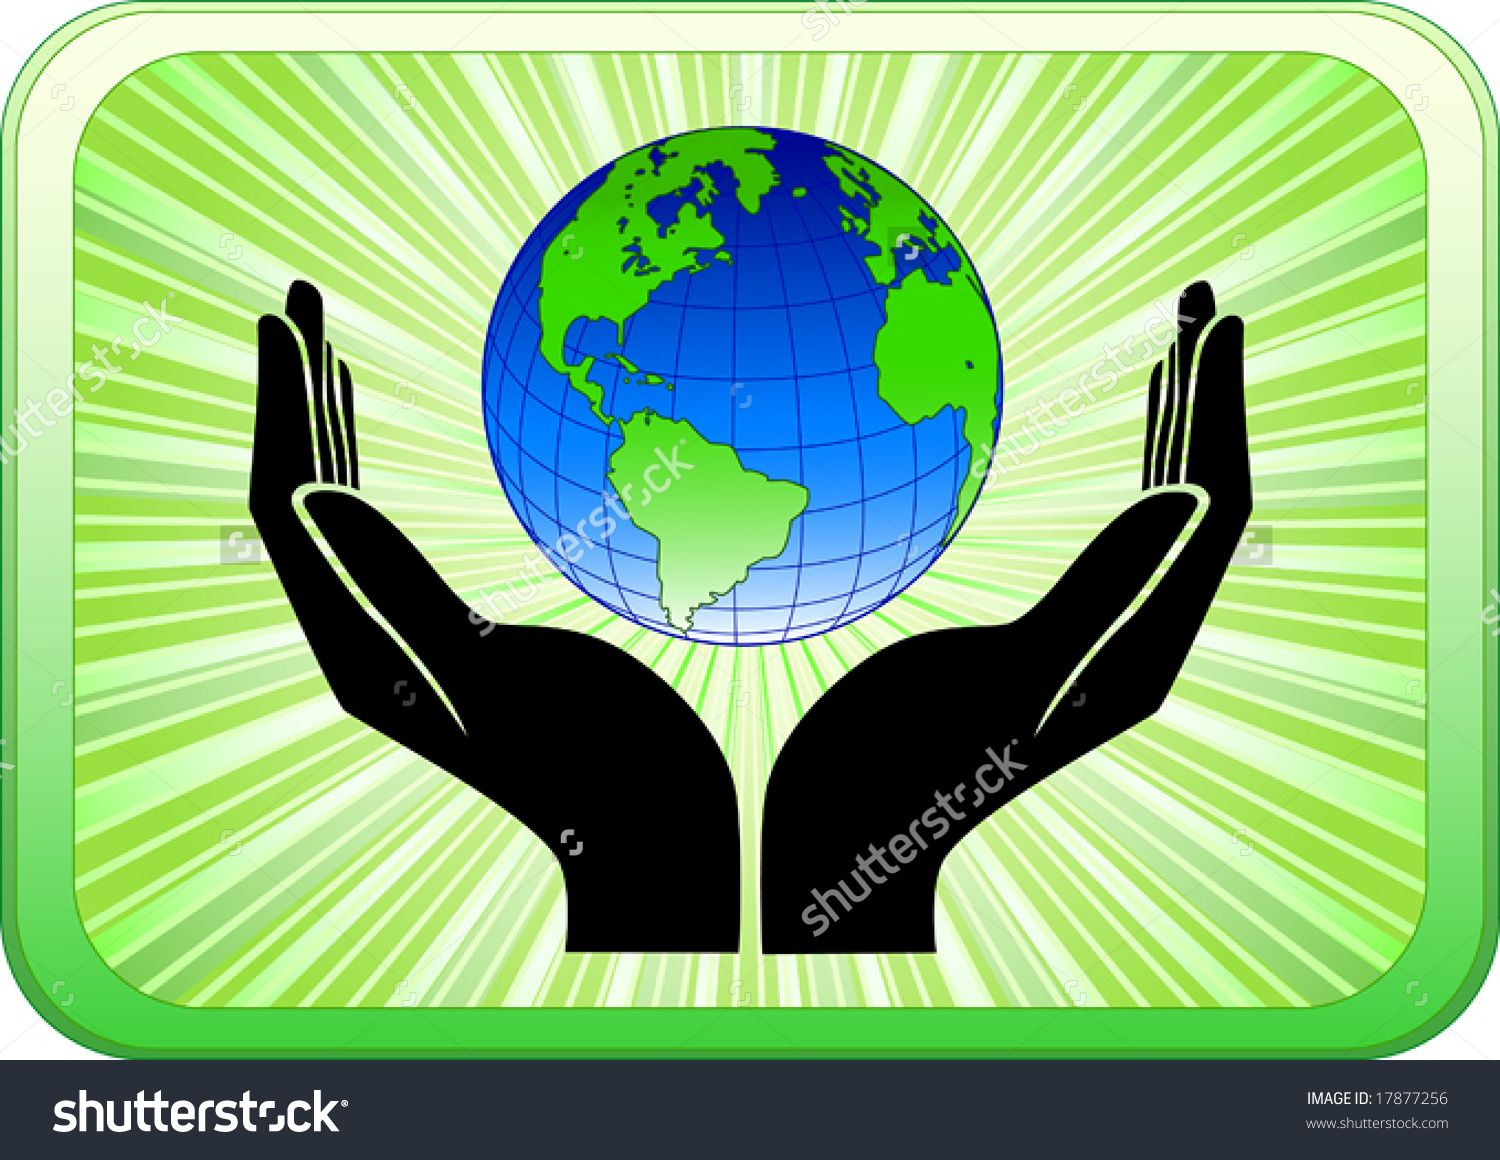 Hands holding earth clipart image transparent stock Pin by Emma\'ly4 on n | Open hands, Earth clipart, Earth image transparent stock